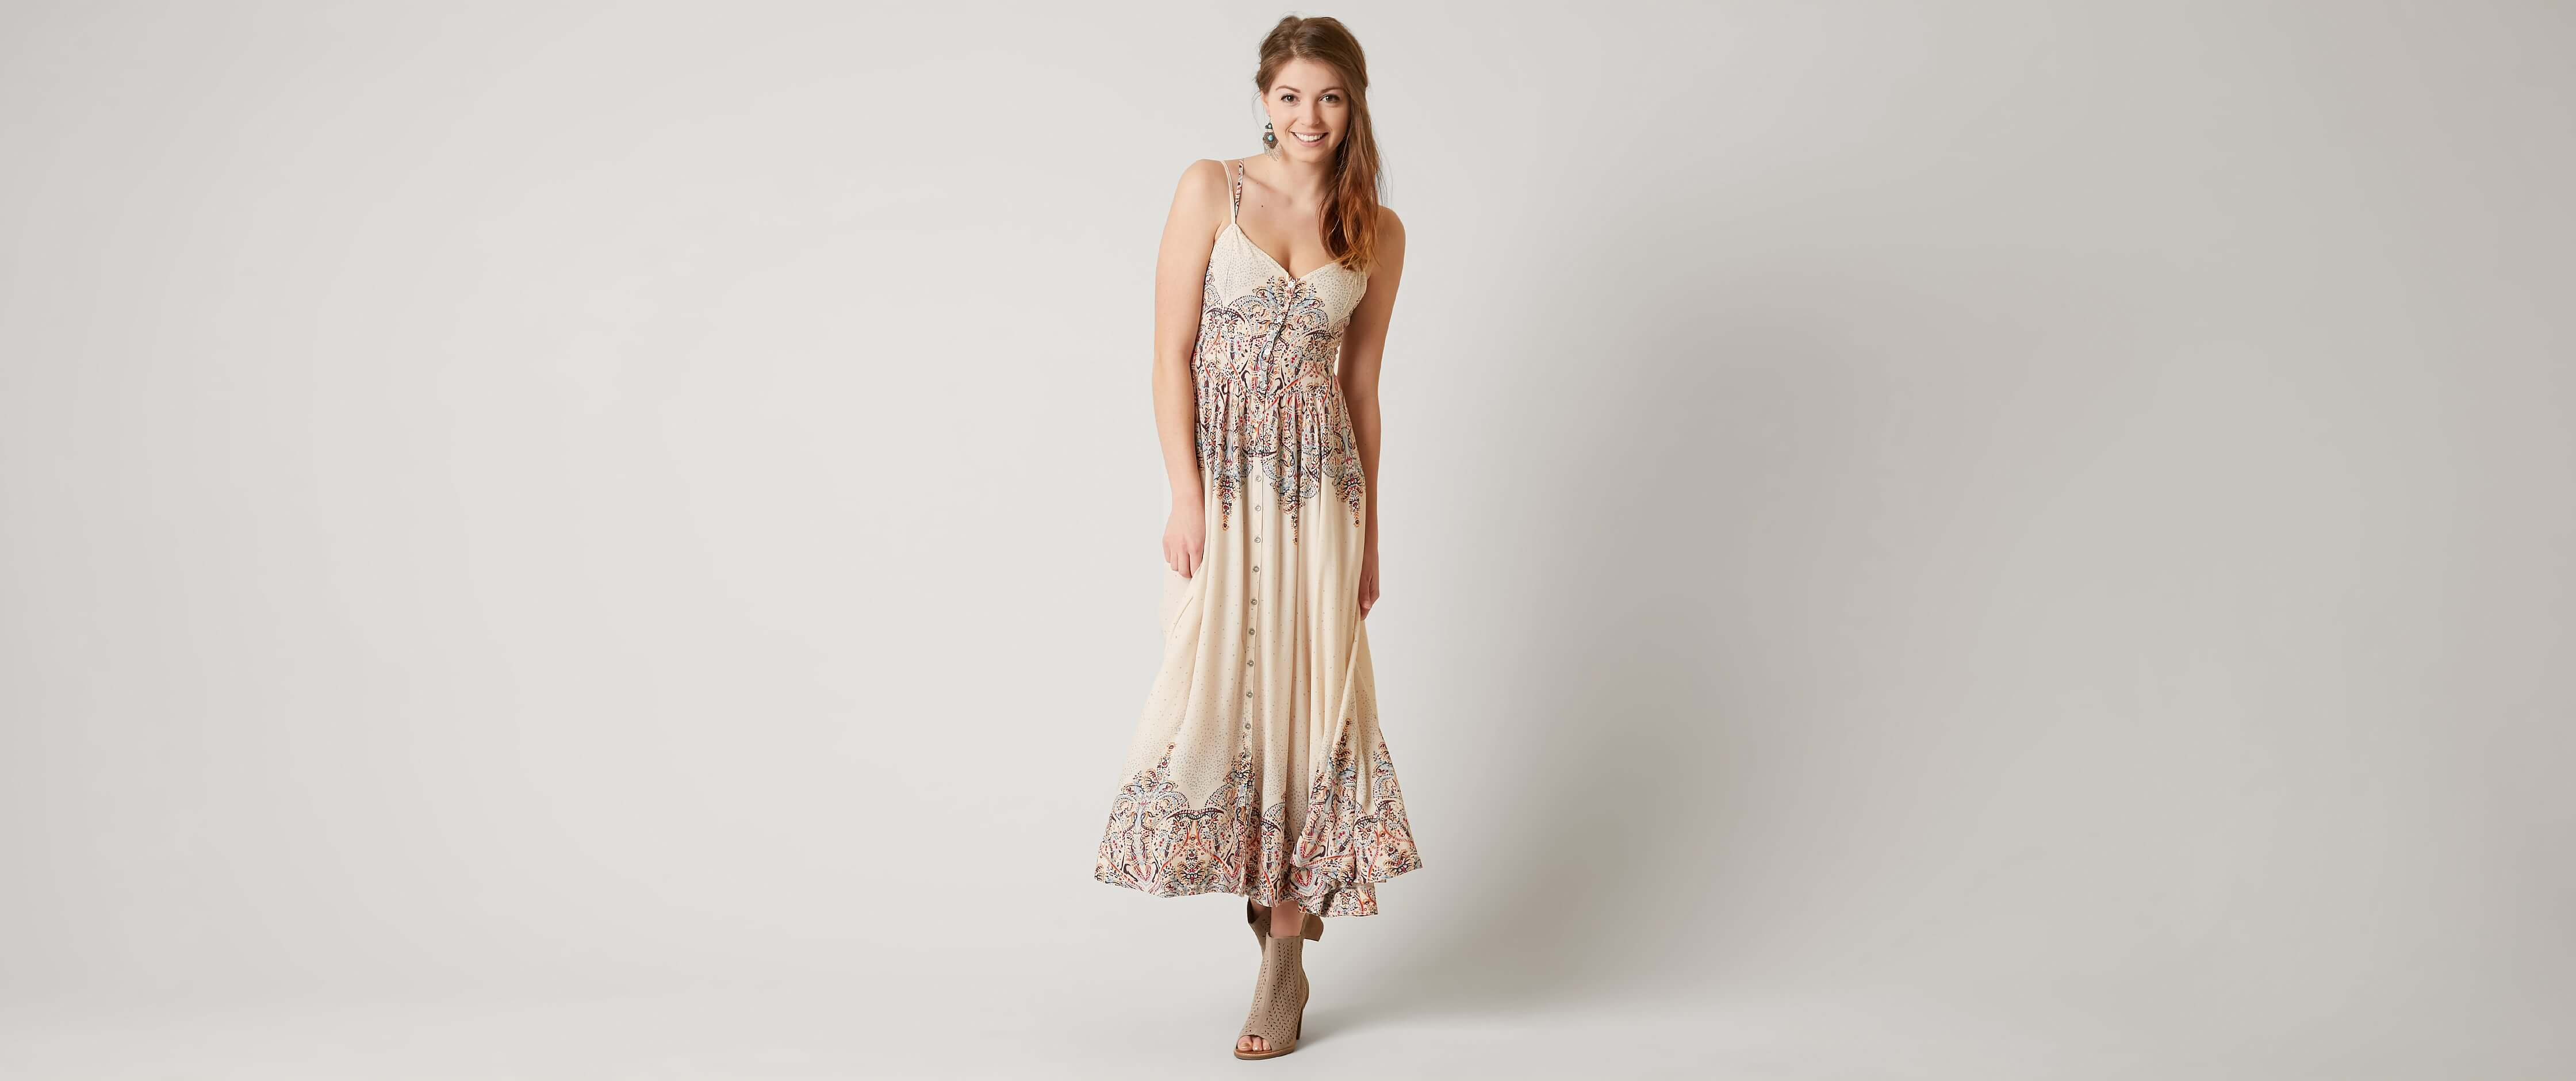 Free people maxi dresses for women